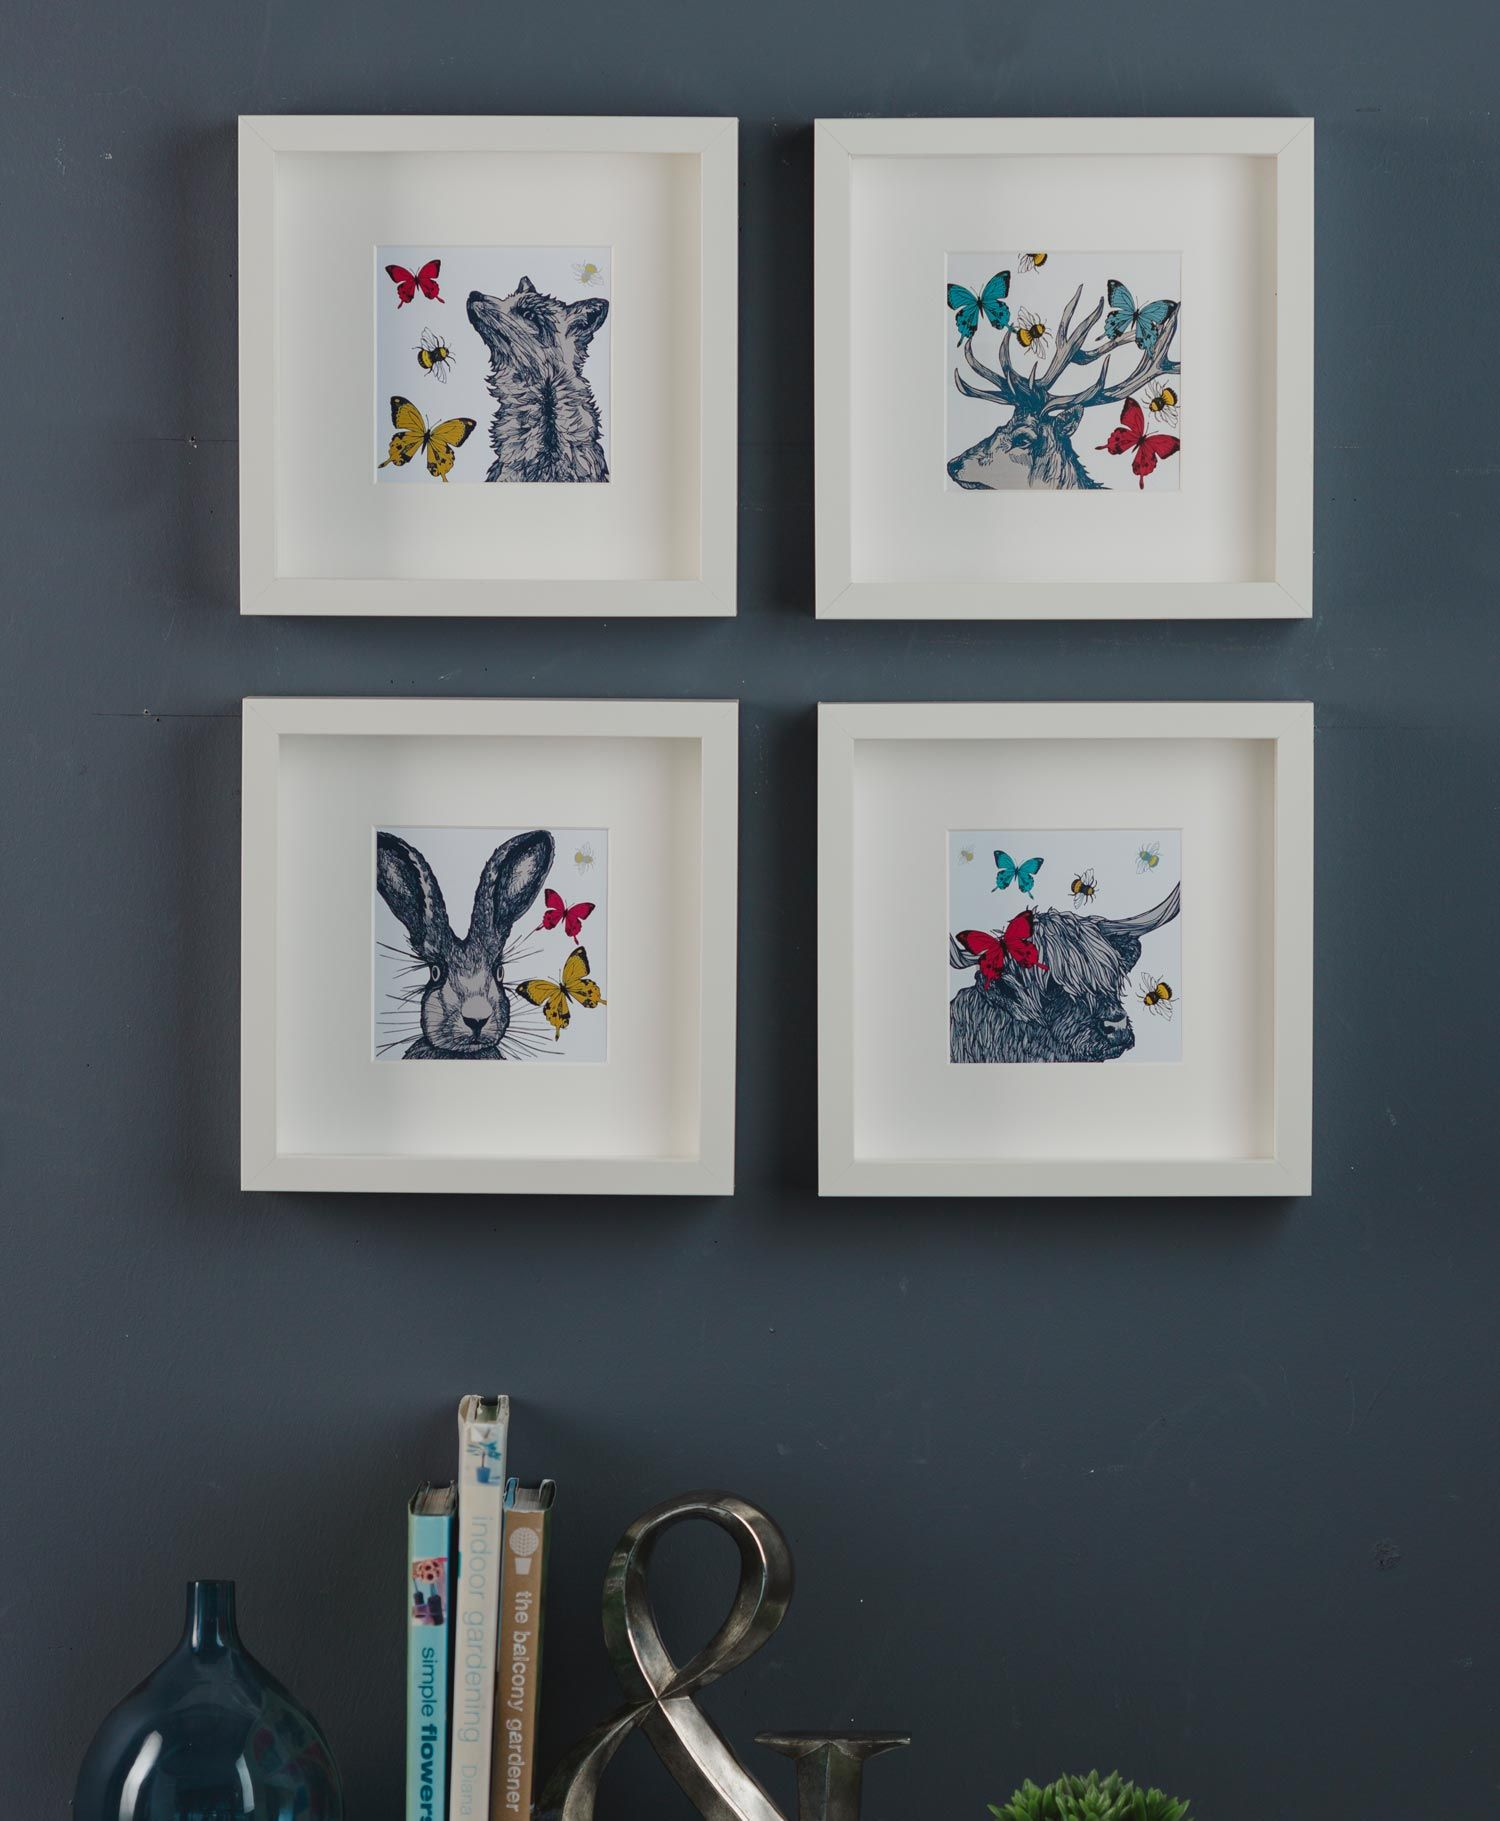 Foxy Square Art Print These New Ilrations And Wall Ideas By Scottish Ilrator Gillian